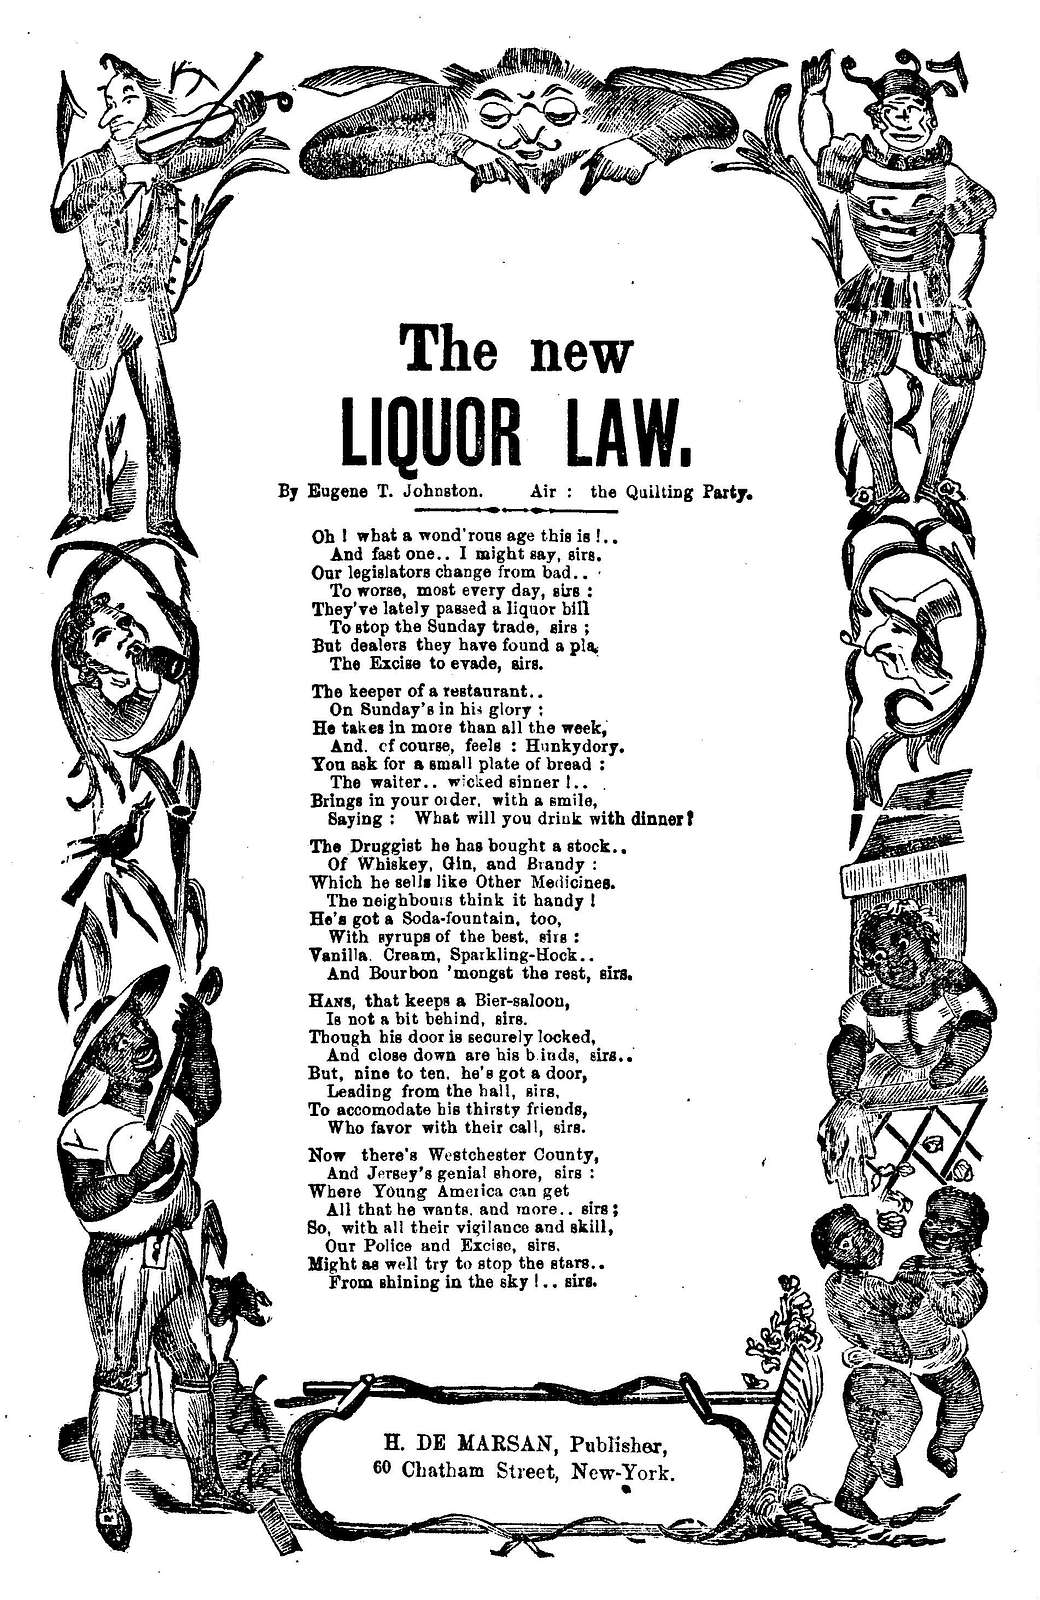 The new liquor law. By Eugene T. Johnston. Air: The quilting party. H. De Marsan, Publisher, 60 Chatham Street, N. Y